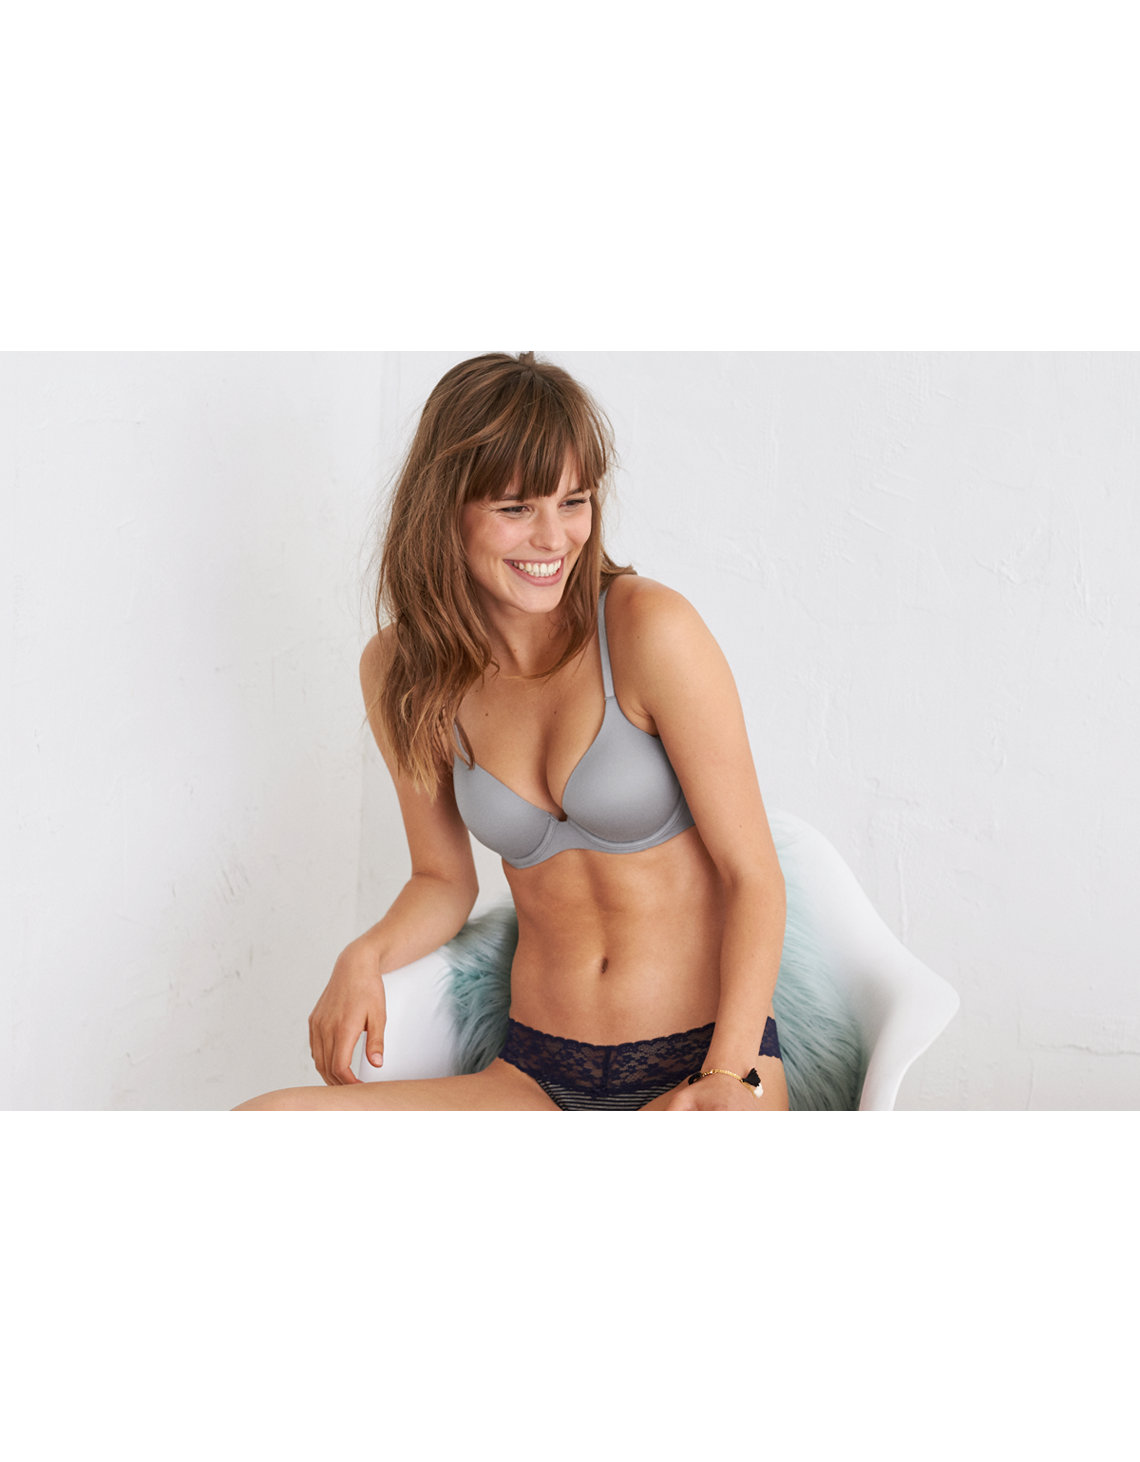 b509bb9e7f6 Aerie Real Sunnie Full Coverage Lightly Lined Bra. Placeholder image.  Product Image